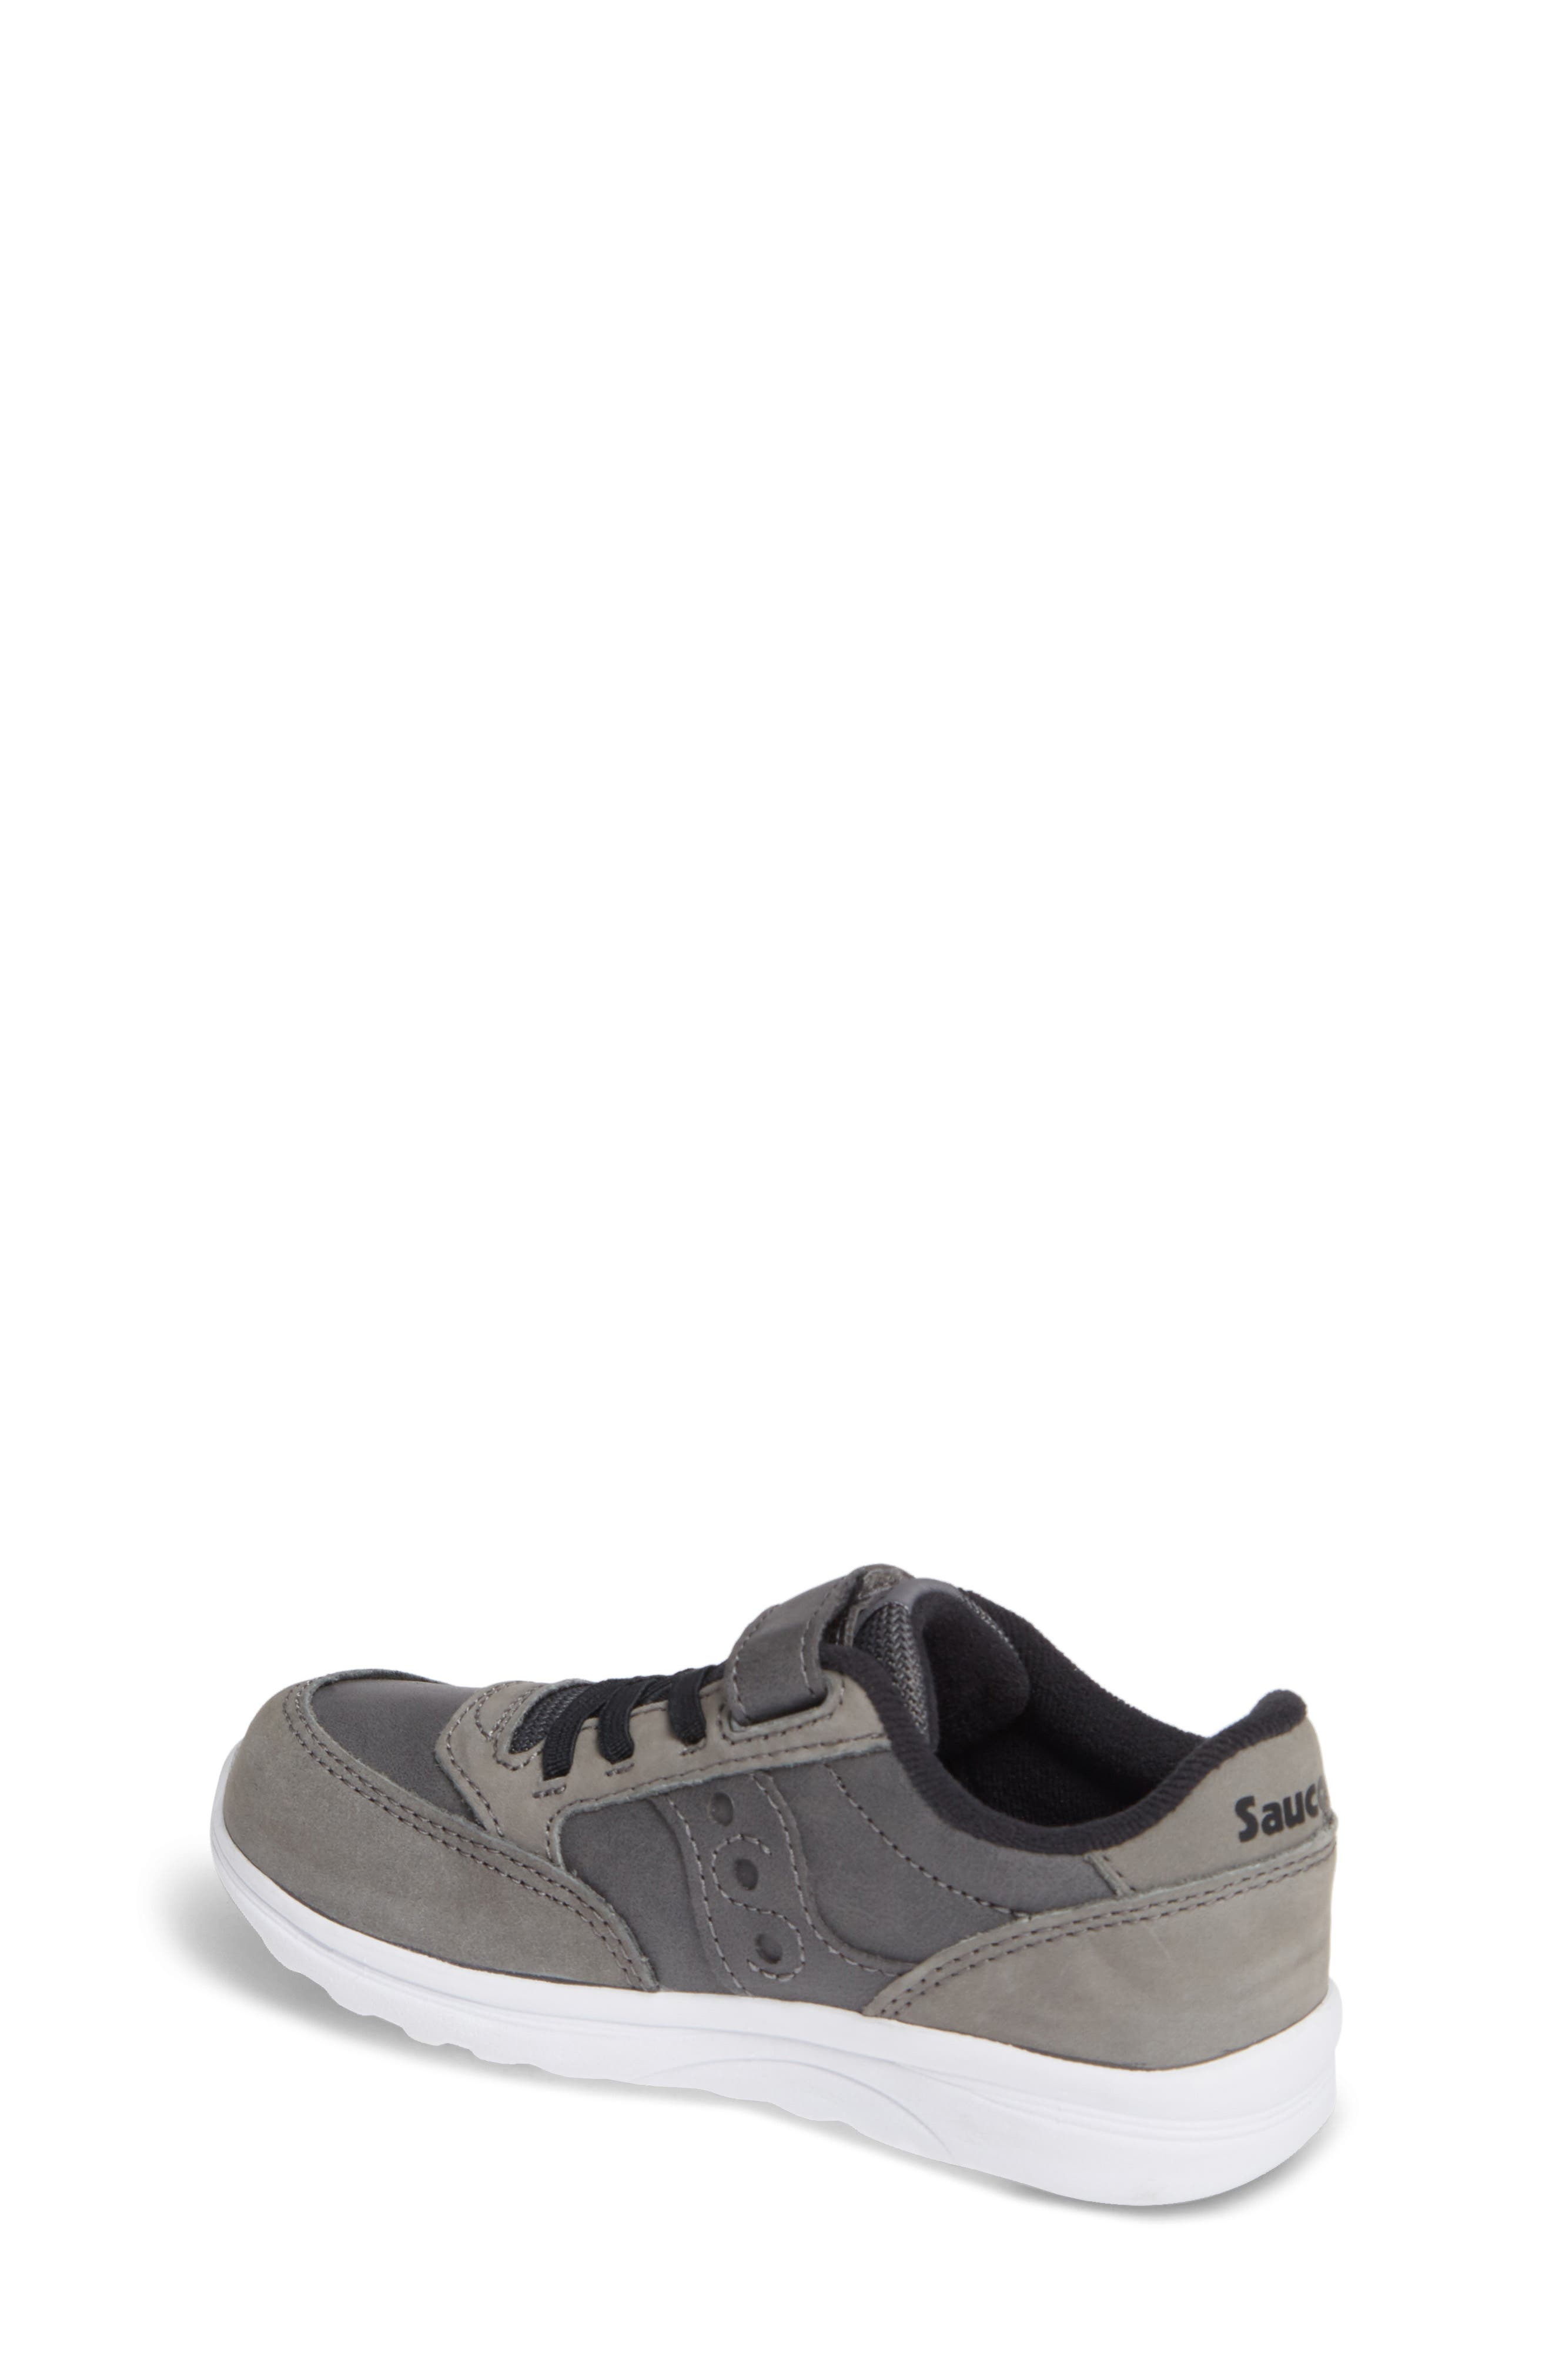 'Baby Jazz - Lite' Sneaker,                             Alternate thumbnail 2, color,                             GREY LEATHER